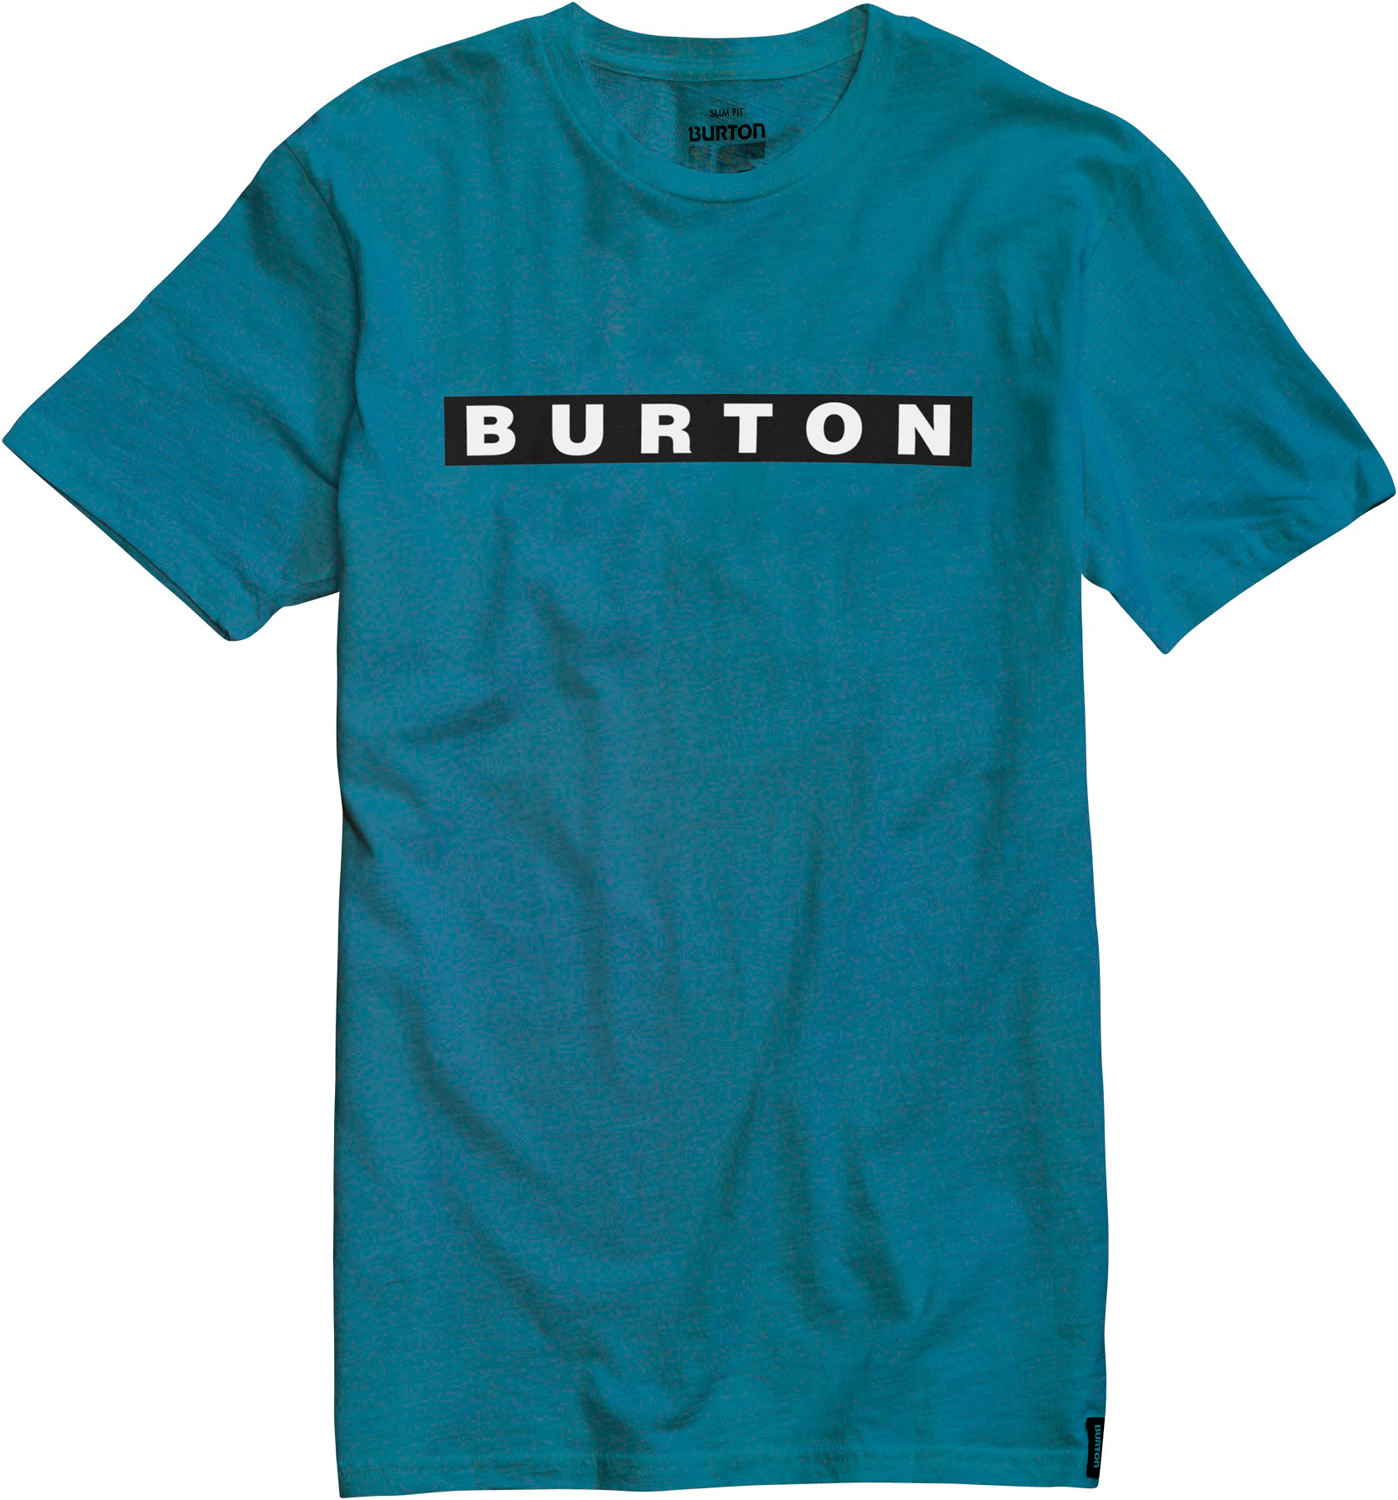 Snowboard Key Features of the Burton Bar Slub T-Shirt: 100% Cotton Slub Jersey Garment dyed Screen Print on Front Slim Fit - $18.95